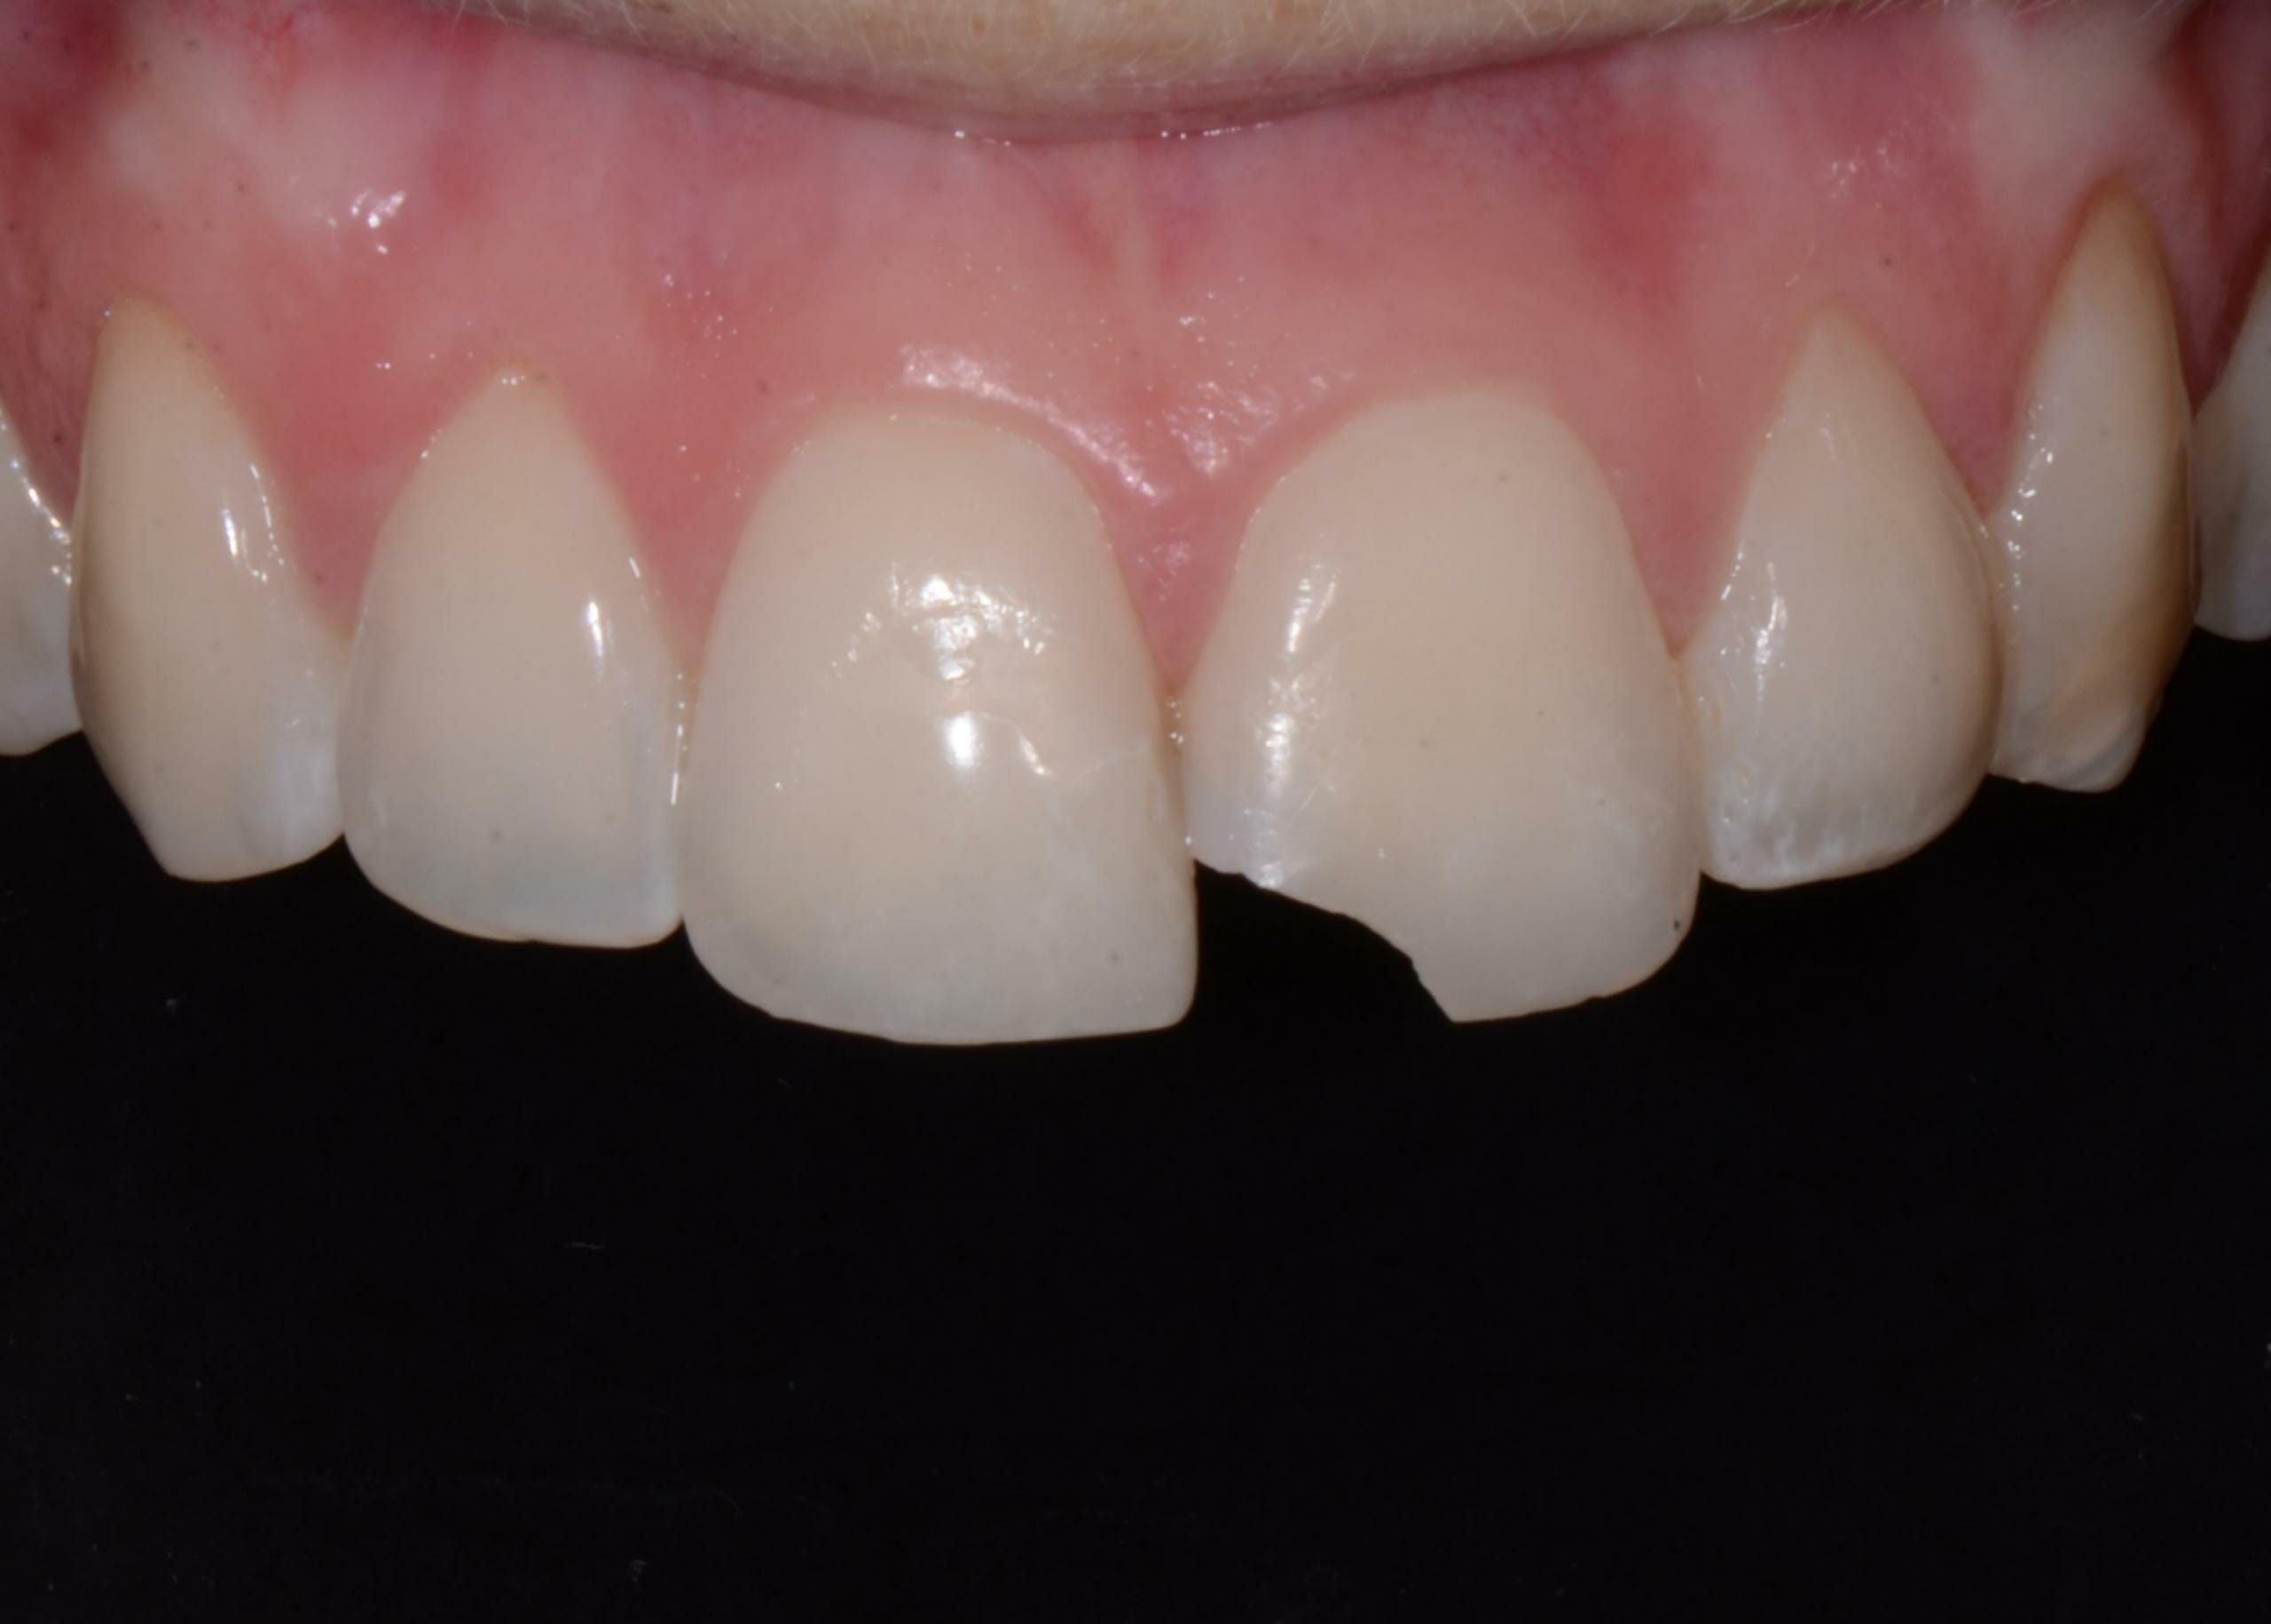 closeup of chipped tooth